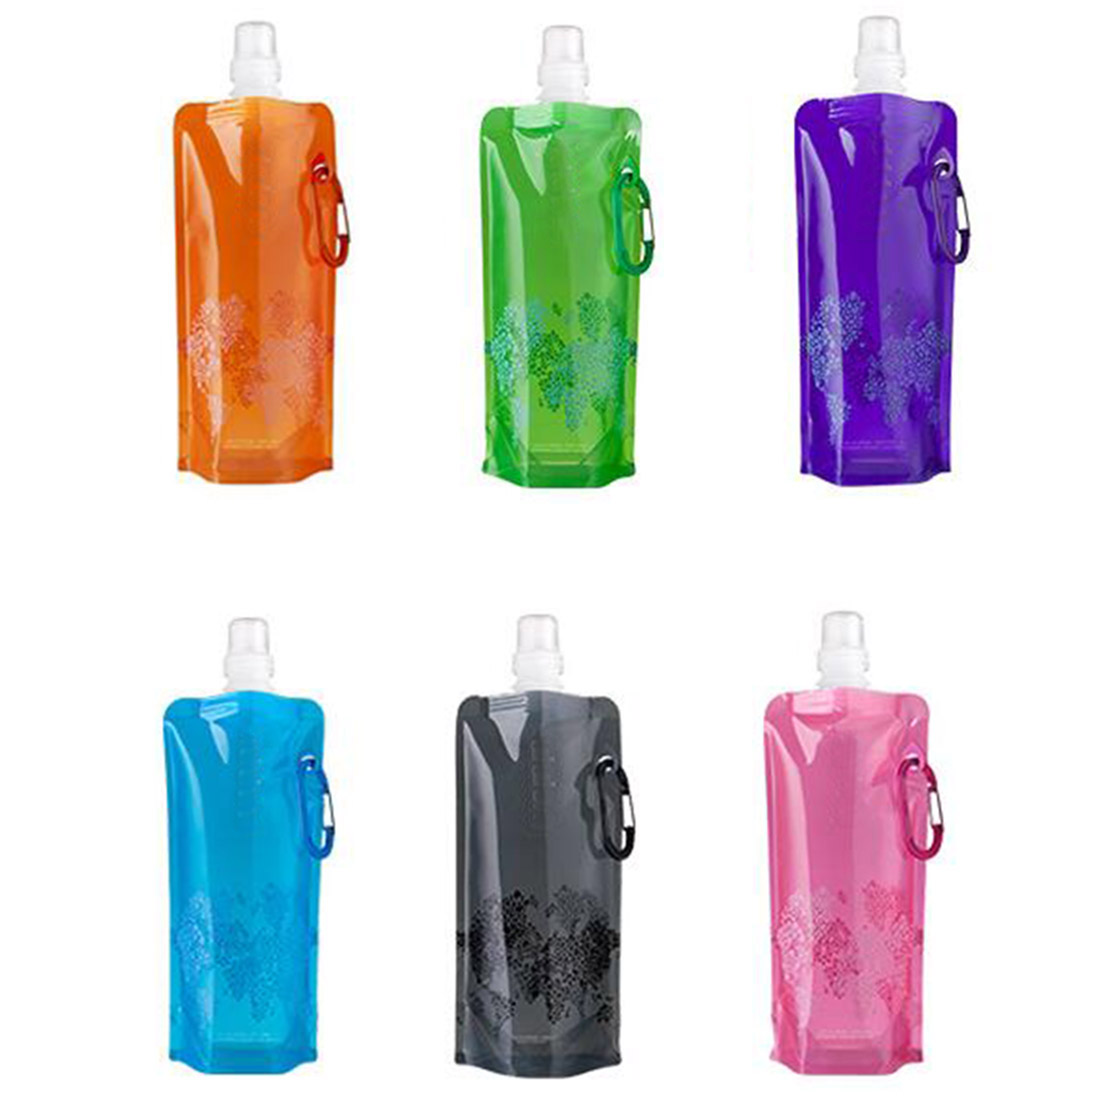 Running Outdoor Sport Camping Hiking Random Color Silicone Water Bag Bottle 480ml Portable Foldable Ice In Bottles From Home